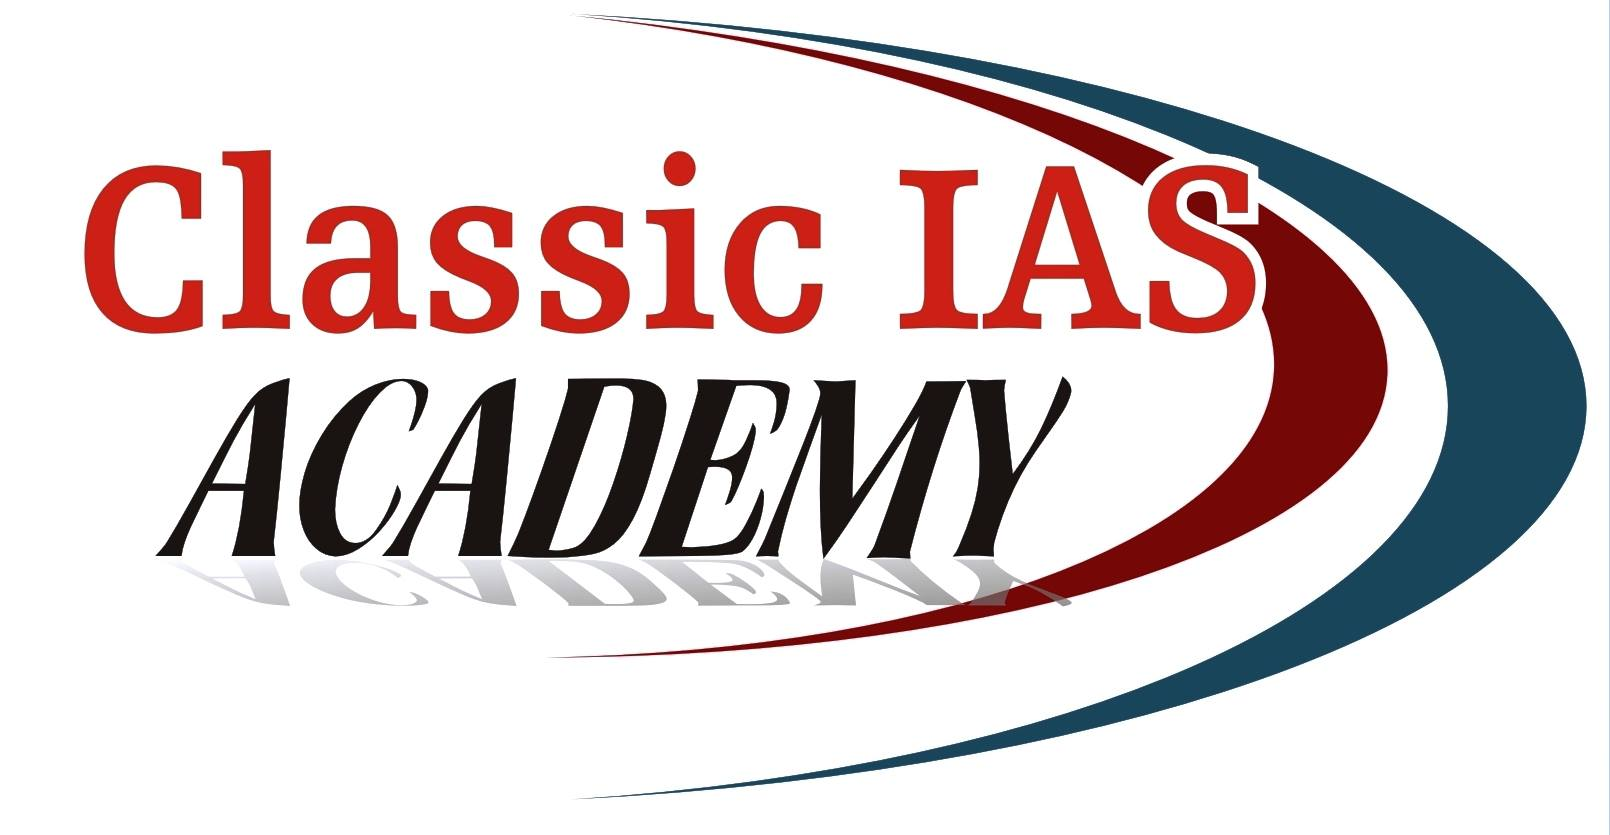 Classic IAS Academy Photo1